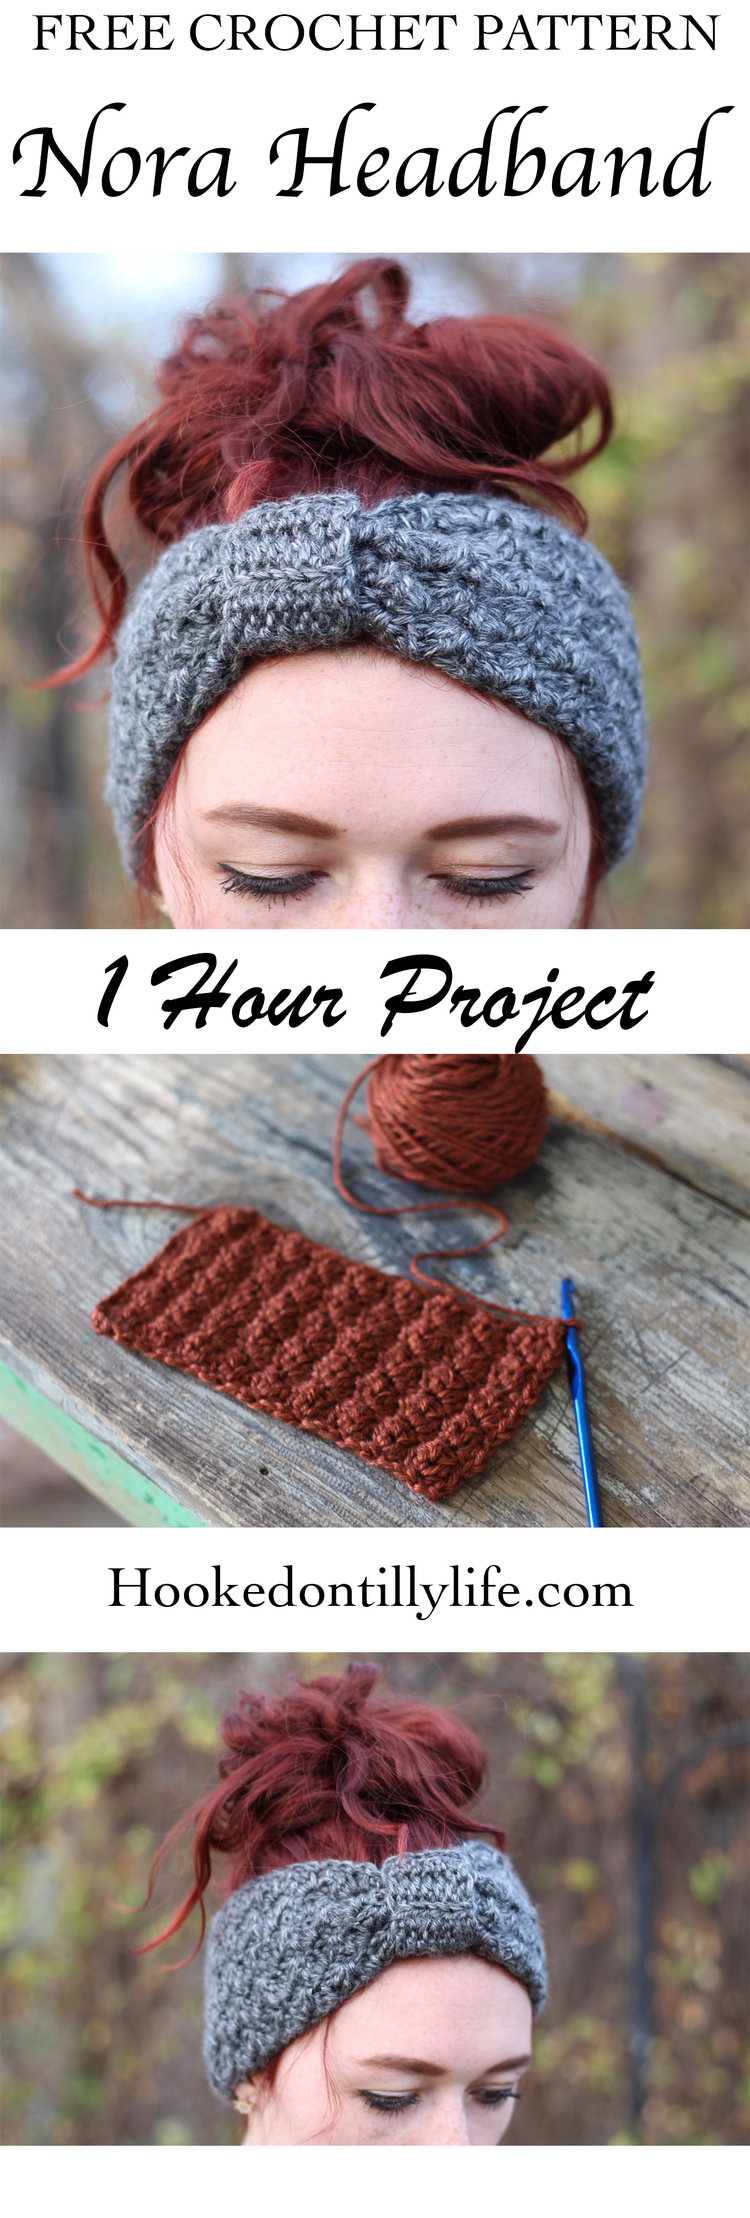 The Nora Headband - Free Crochet Pattern — Hooked On Tilly